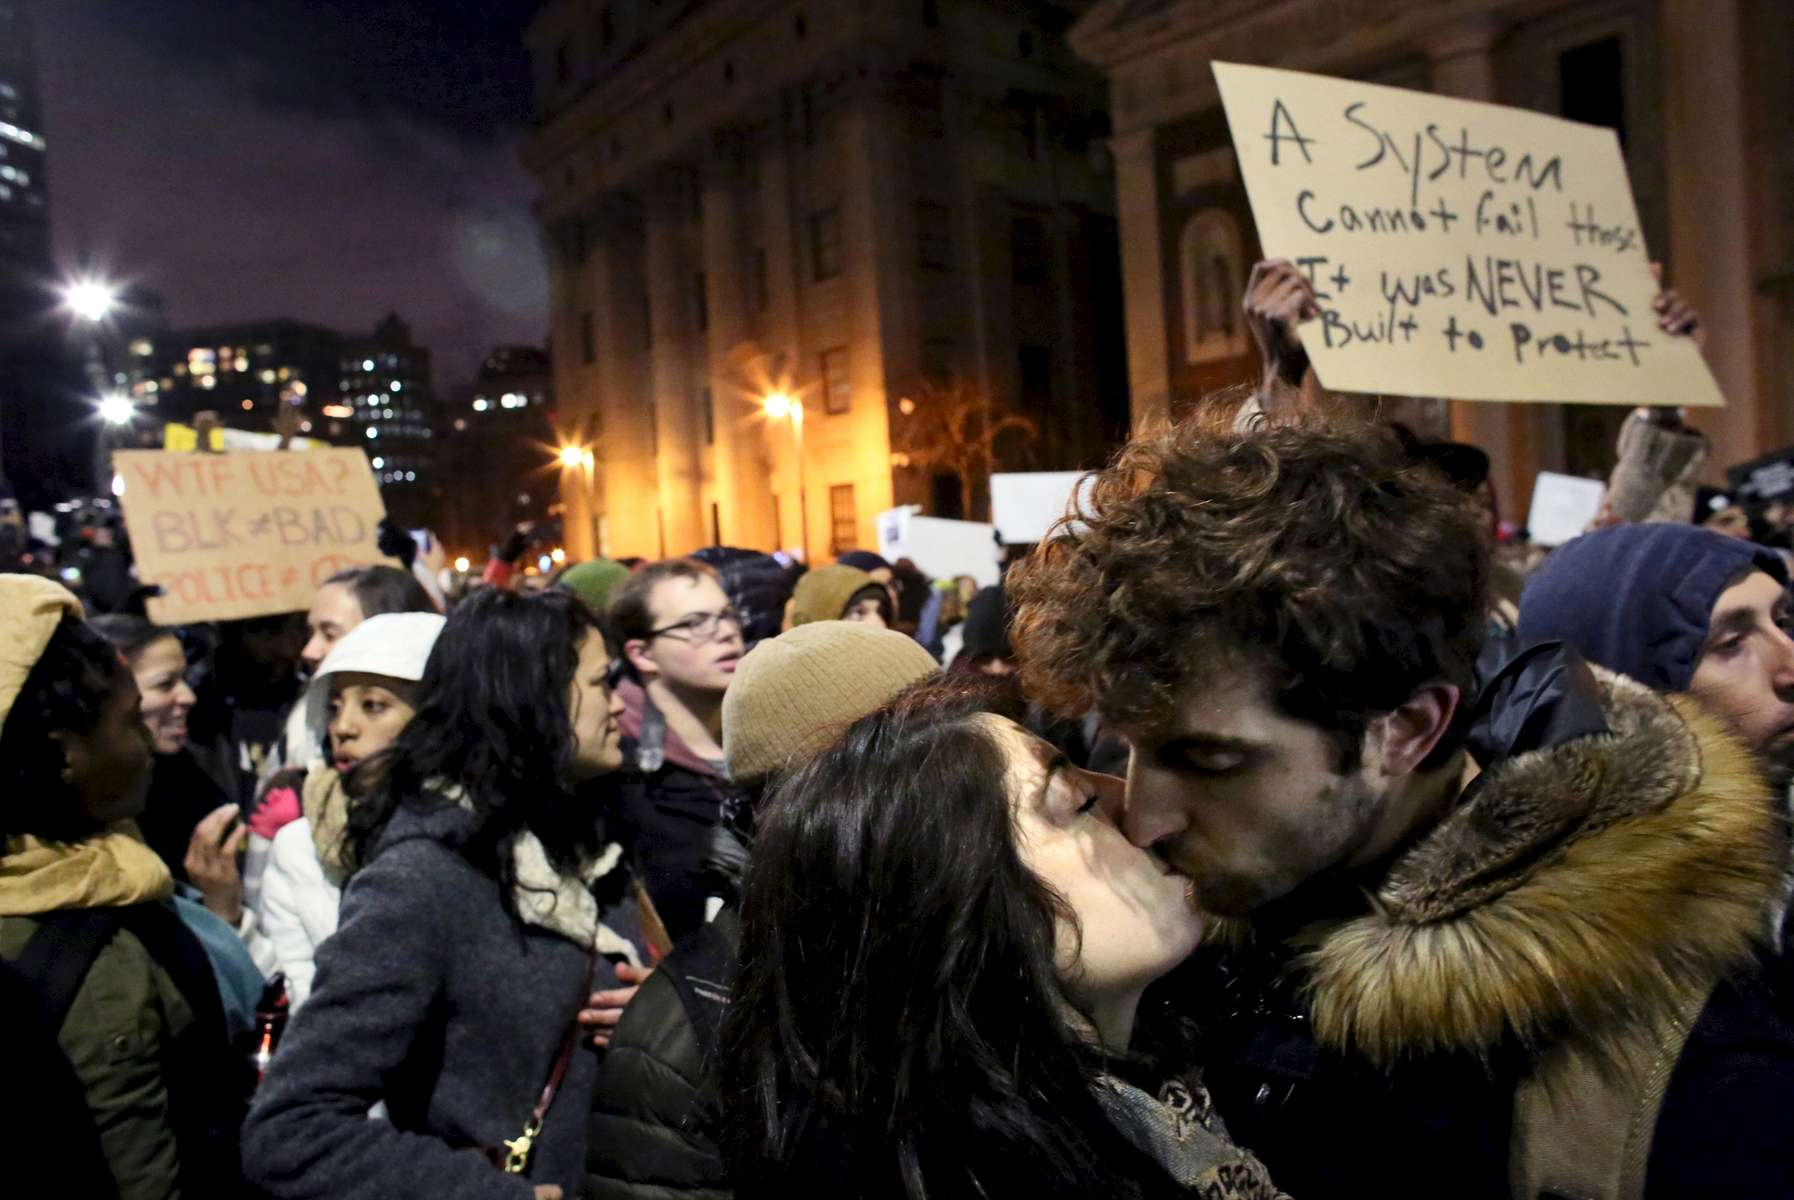 (L-R) Couple Kaitlin Ellis Fisch, 23, and Evan Leslie Jones, 25, kiss while other protesters march through 1 Police Plaza in the Millions March against police brutality deaths, starting at Washington Square Park in Manhattan, New York on December 13, 2014. Tension against police has recently escalated after the killing of several unarmed black men during routine arrests across the country.